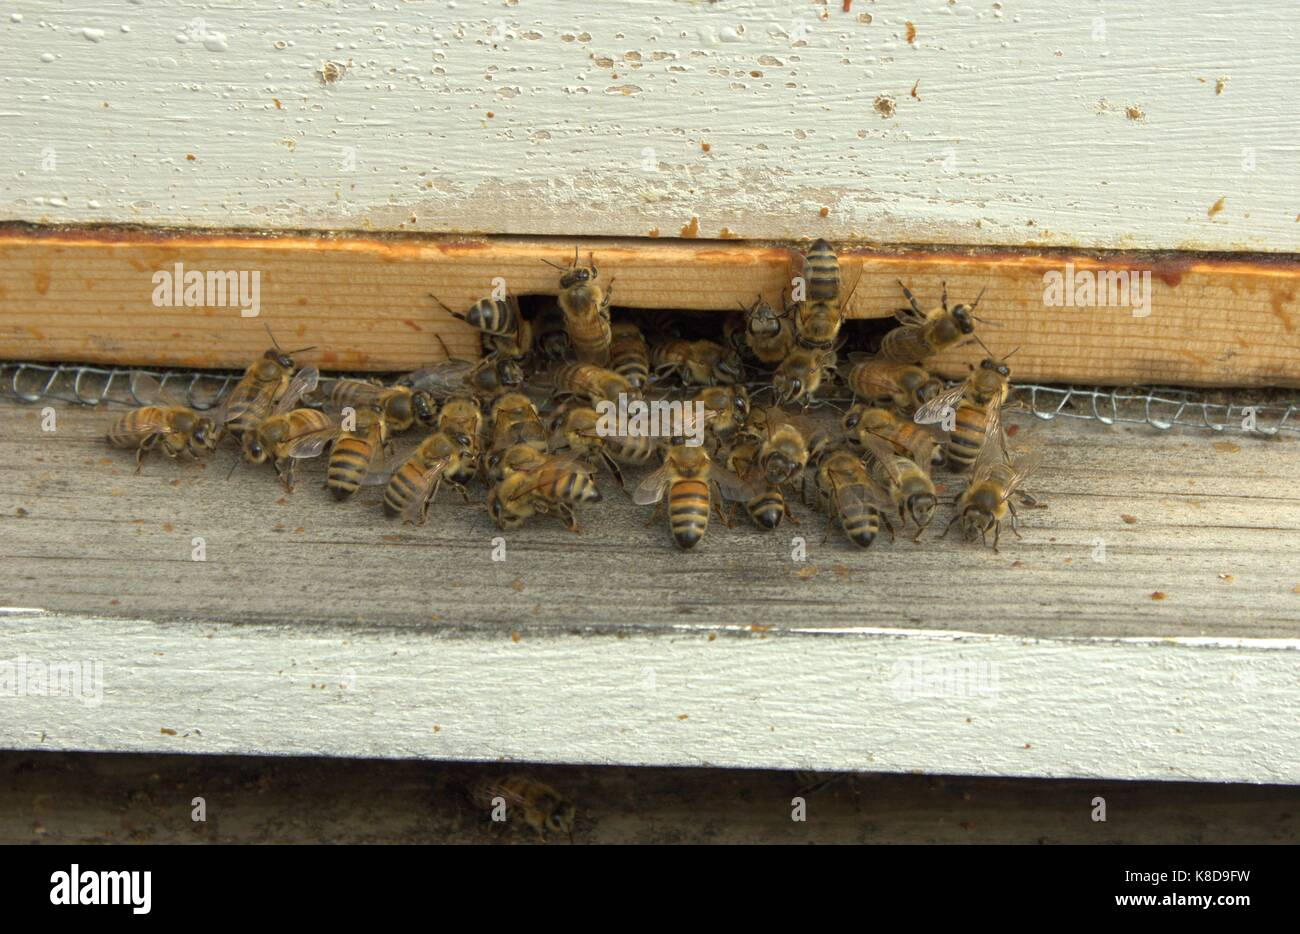 Honey Bees At The Entrance Of Their Hive - Stock Image